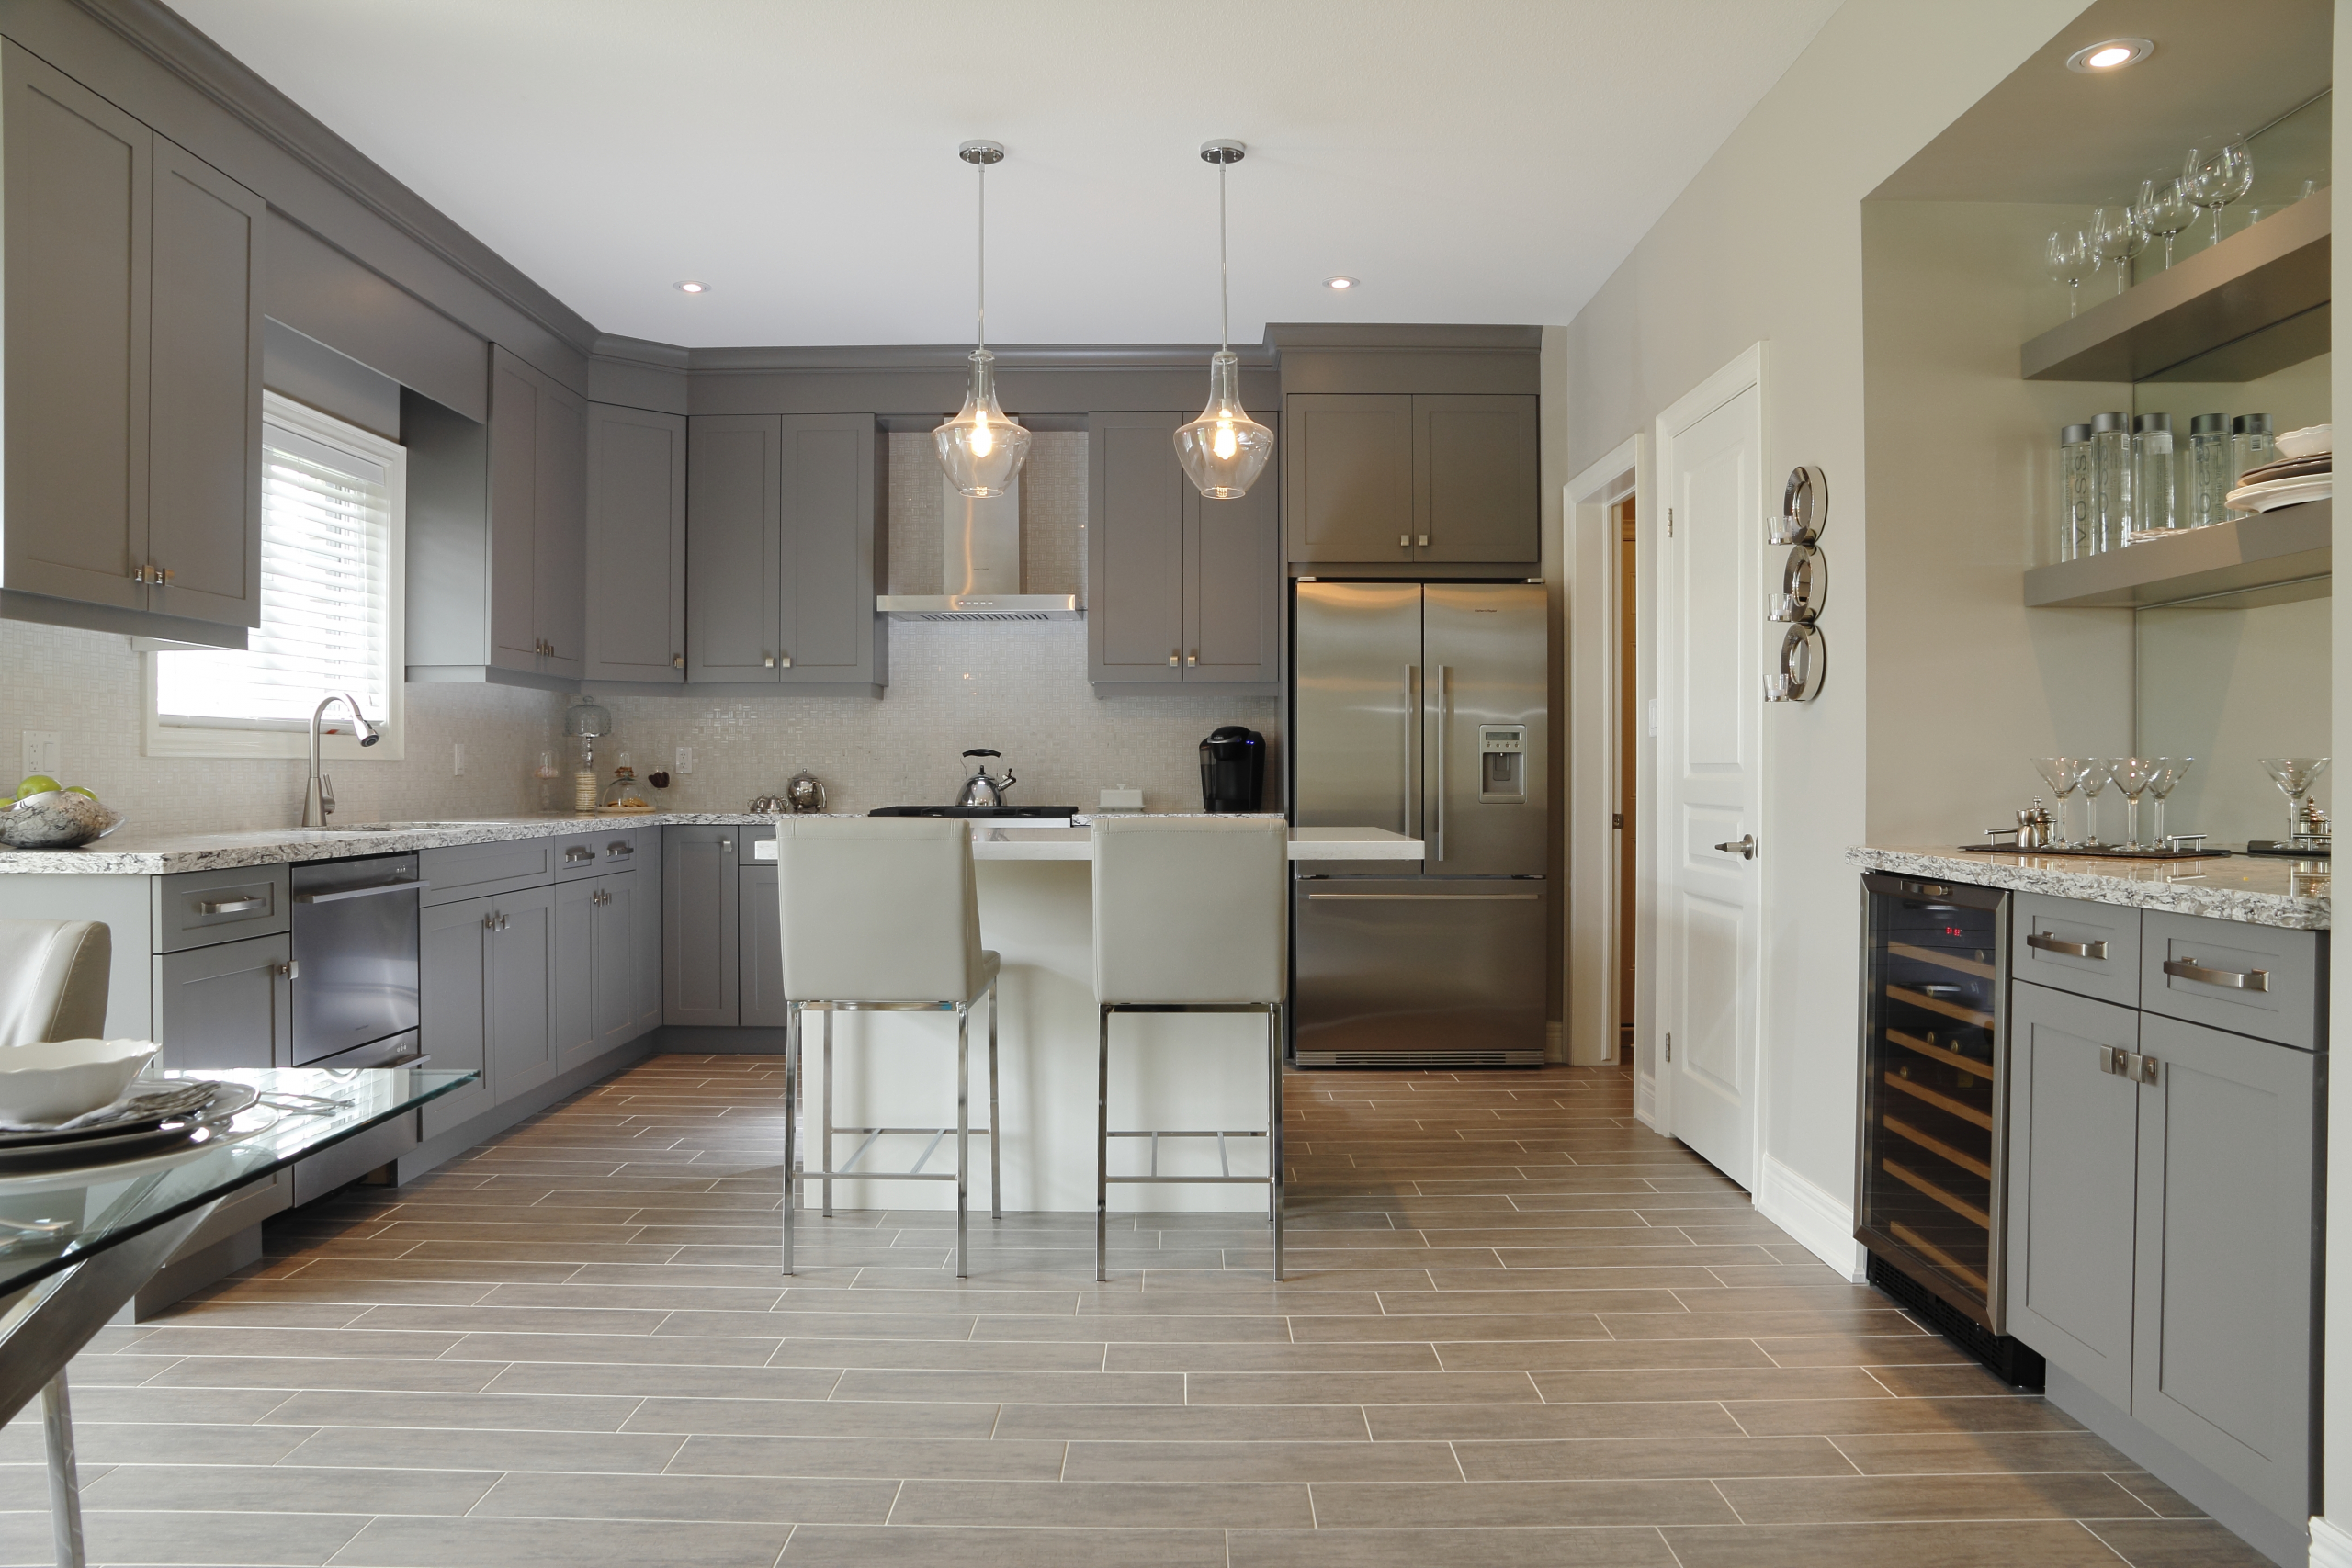 Mountainview Homes - Inspiration Gallery 90